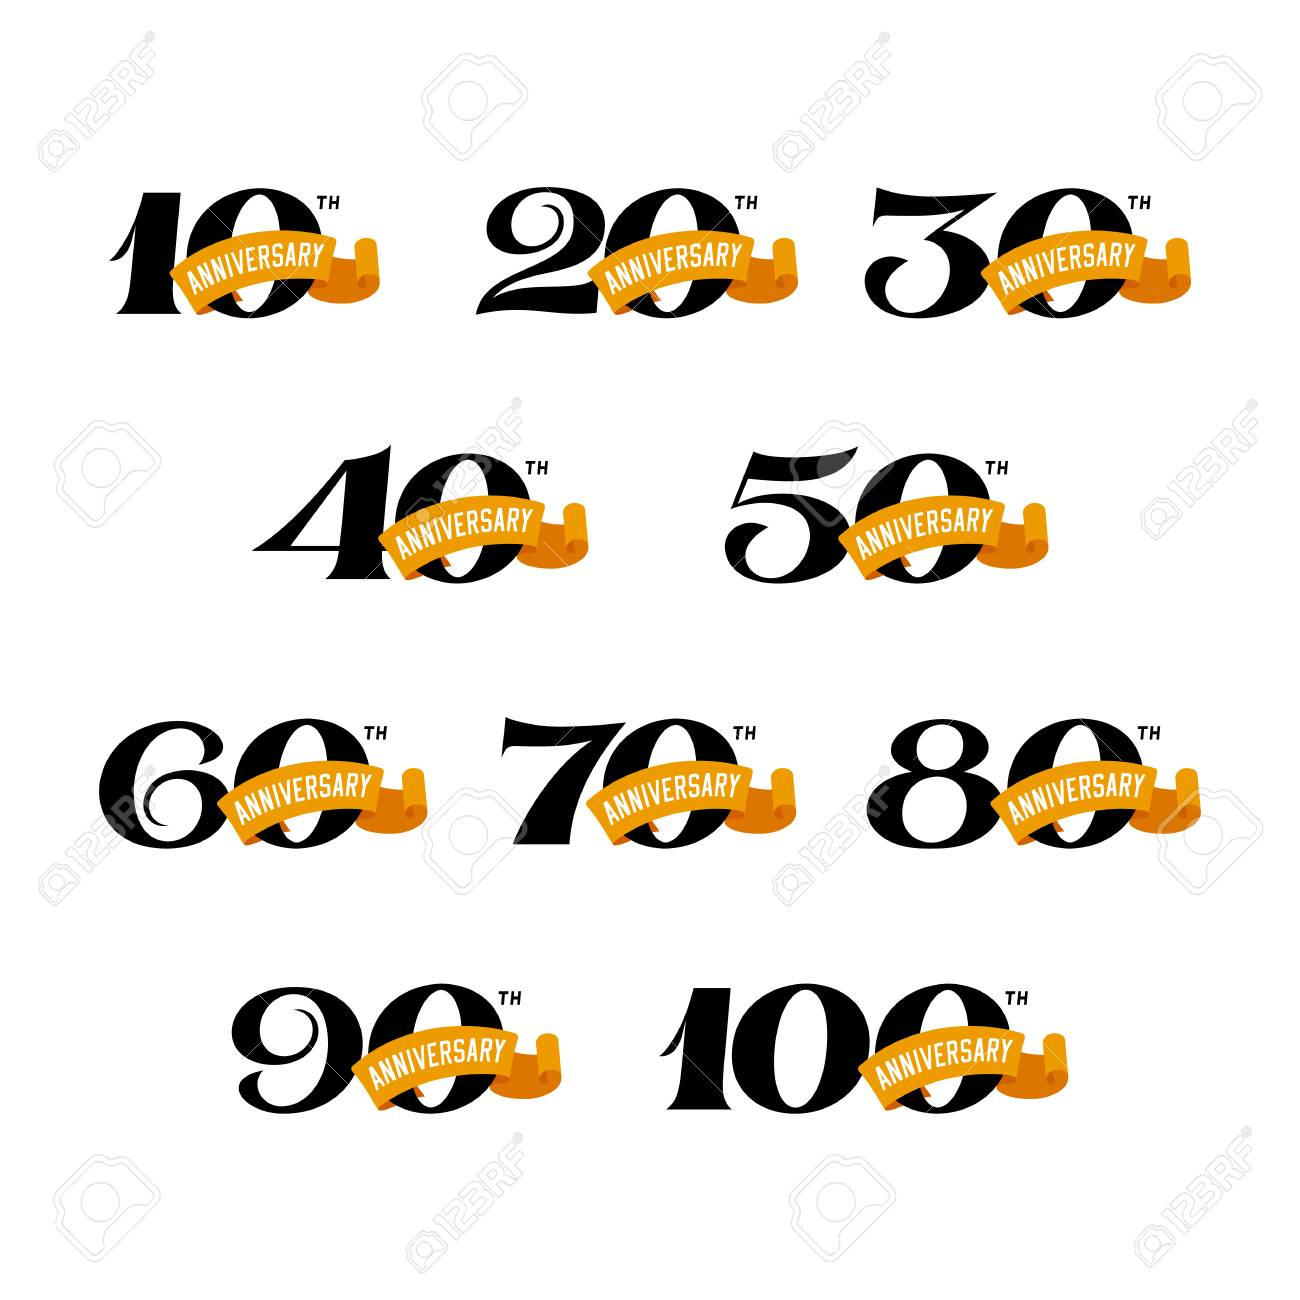 Set of anniversary signs from 10 to 100. Numbers on a white background. Stock Vector signs design elements. - 95737572